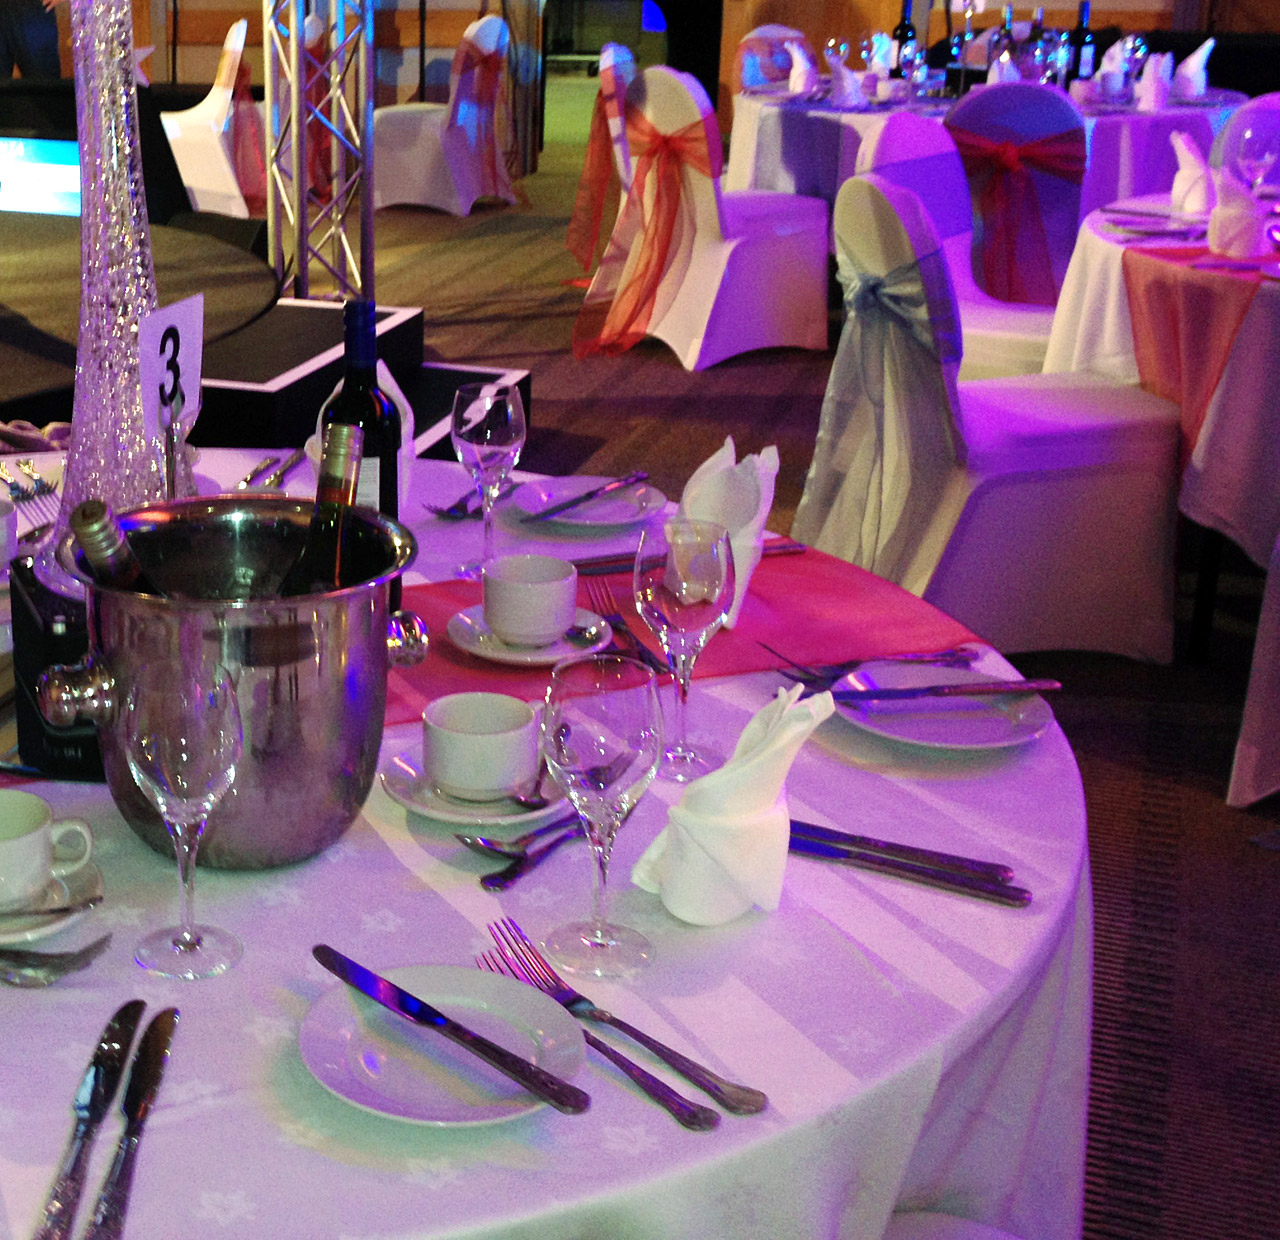 Stylish Seating Corporate Event Table Runners, Chair Covers and Sashes